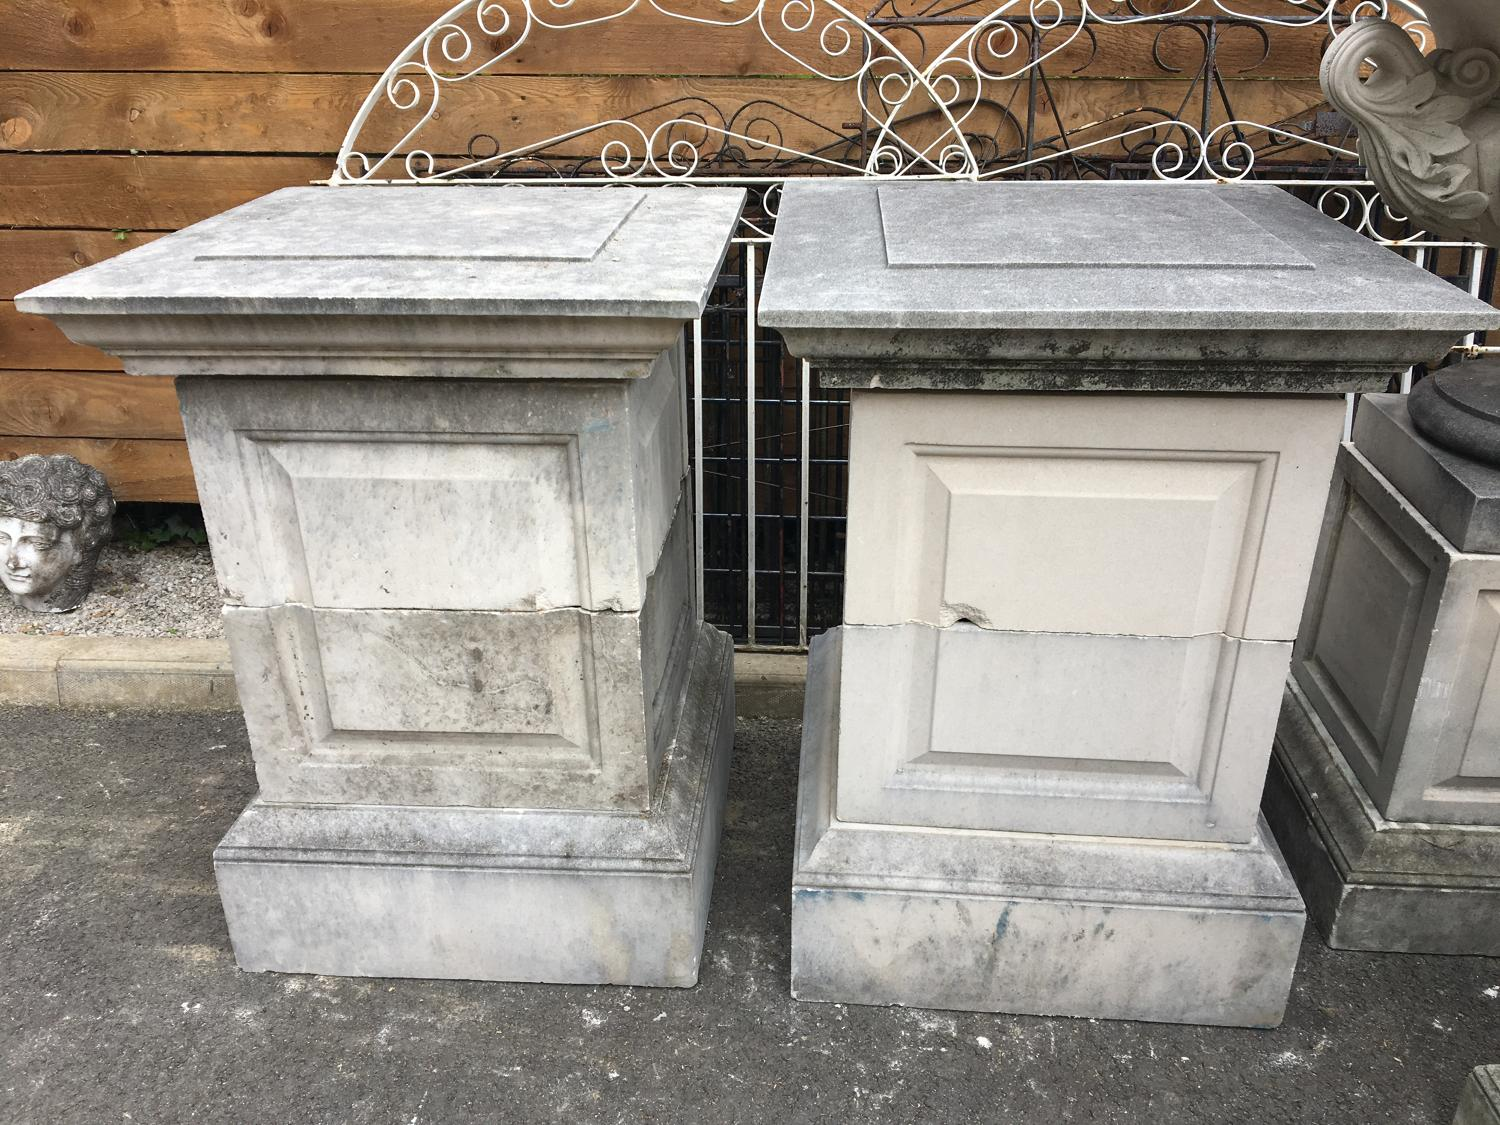 GRAND PAIR OF REGENCY DESIGN PLINTHS